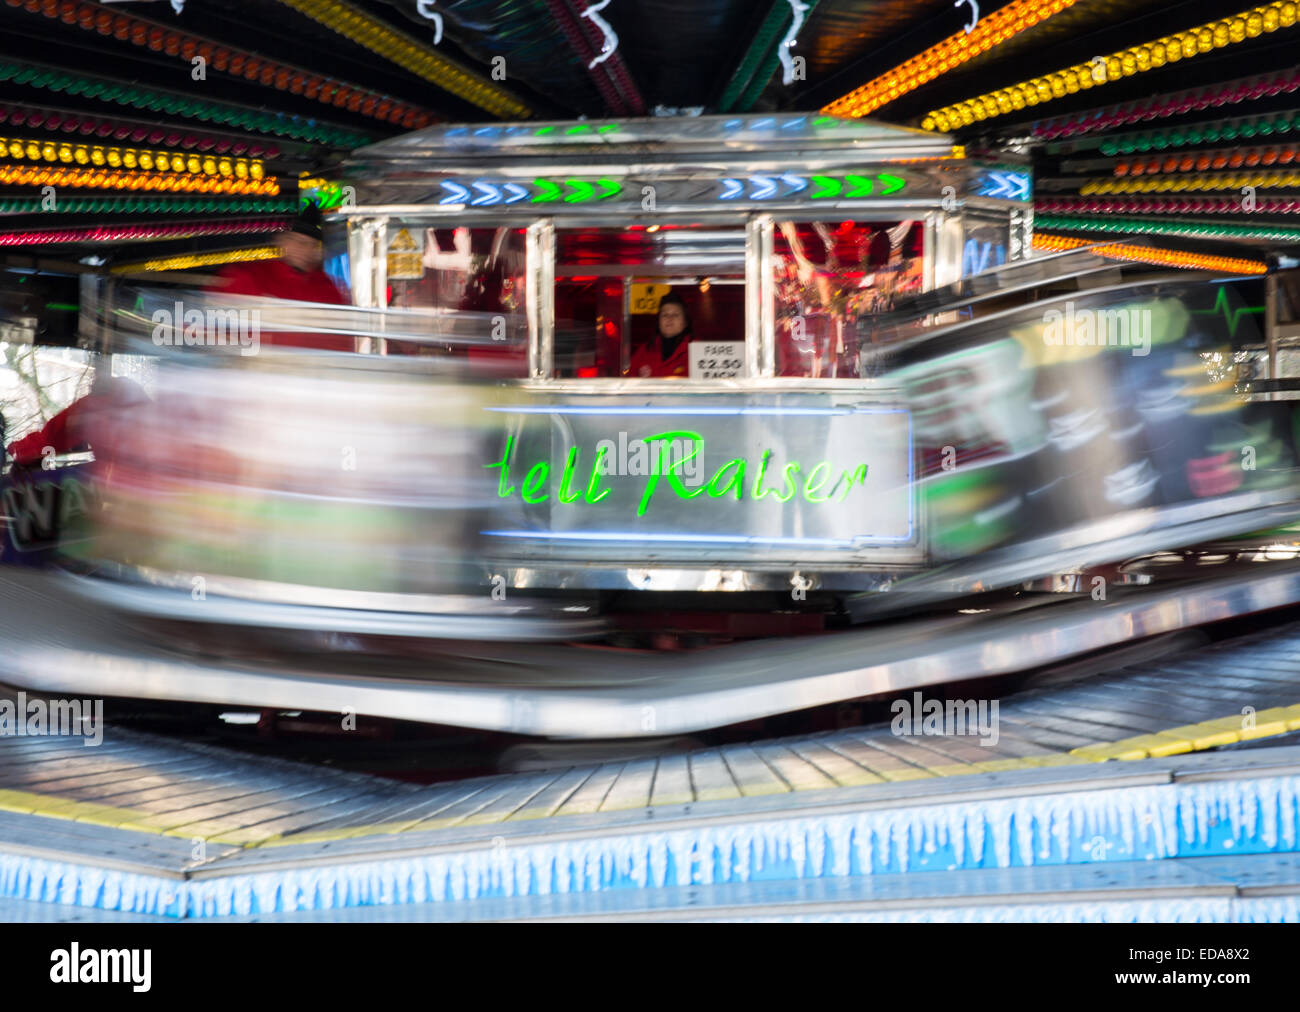 Whirling waltzers spin around at a fair ground ride. - Stock Image